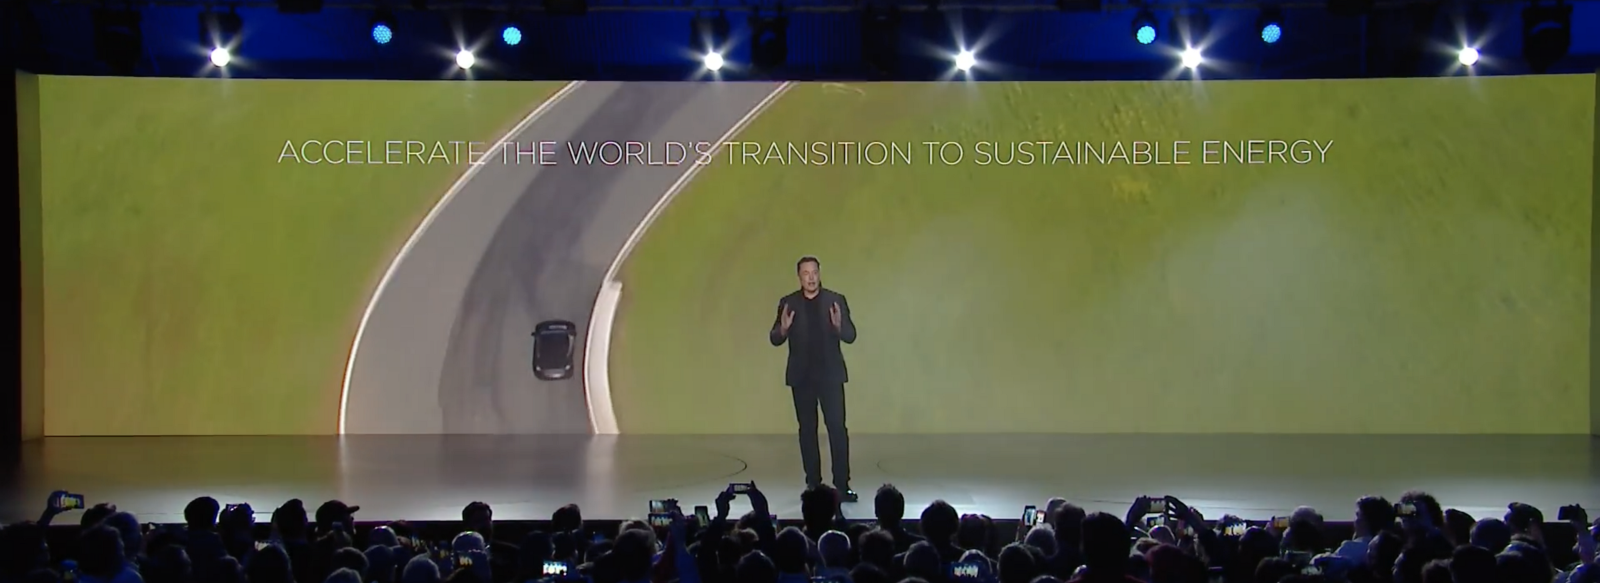 Musk's vision for the future: transition to sustainable energy